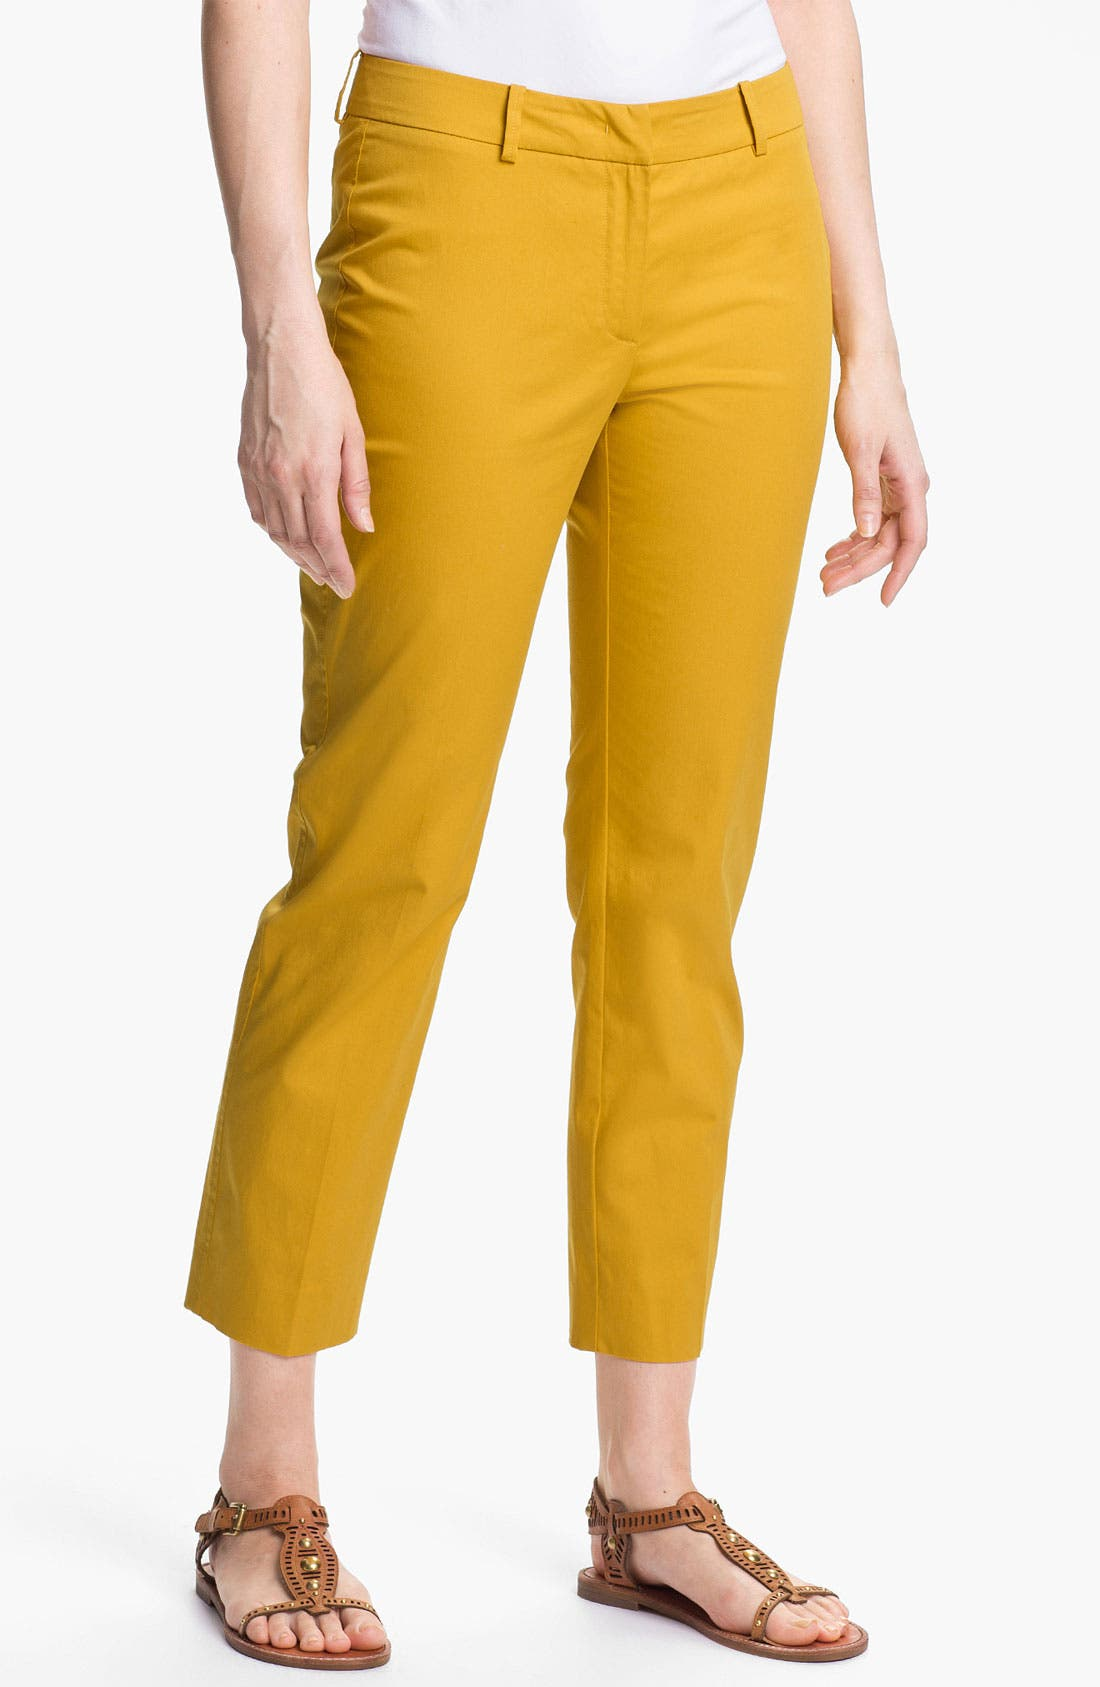 Alternate Image 1 Selected - Weekend Max Mara 'Kiwi' Pants